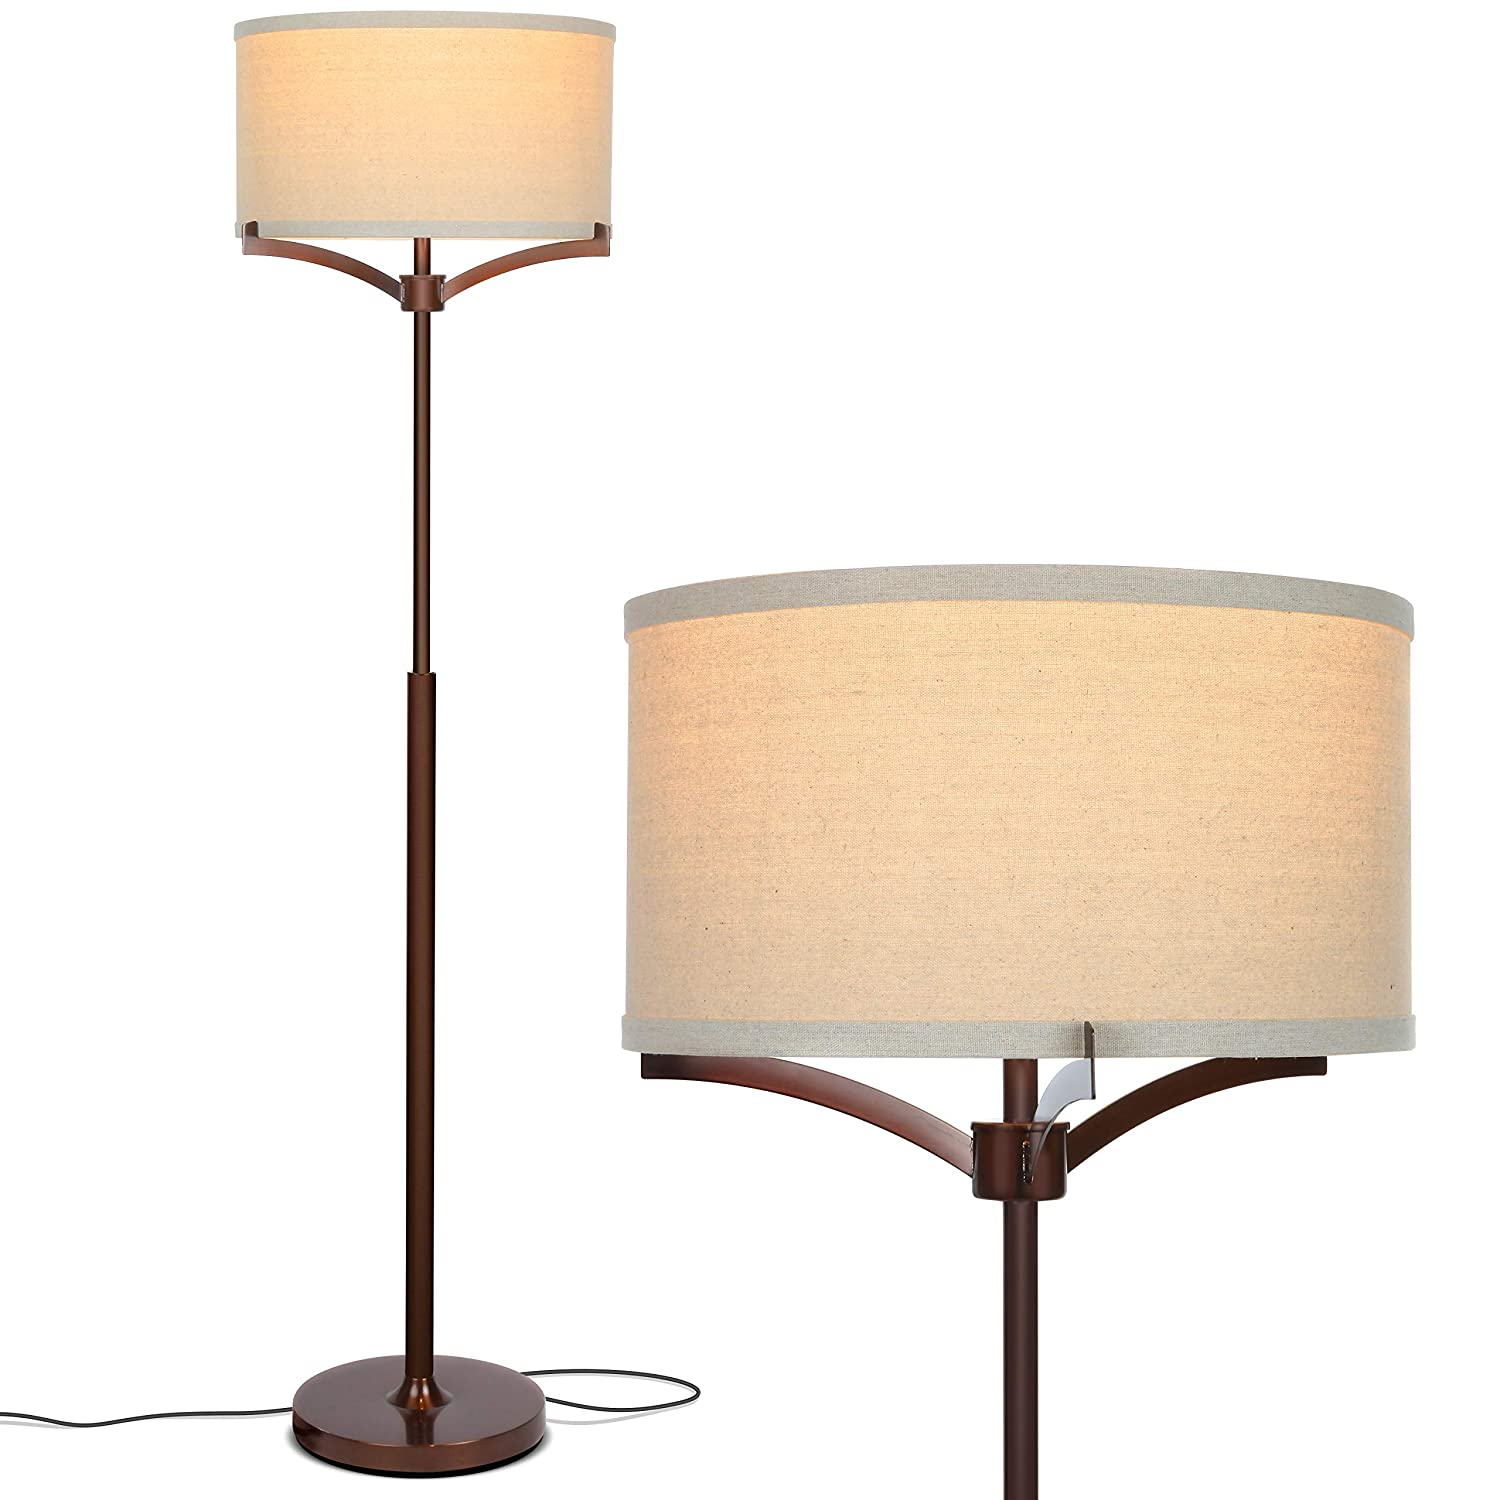 Brightech Elijah LED Floor Lamp Free Standing Pole Light for Living Room or Office Modern Tall Reading Light with Drum Shade – LED Bulb Included – Oil Brushed Bronze